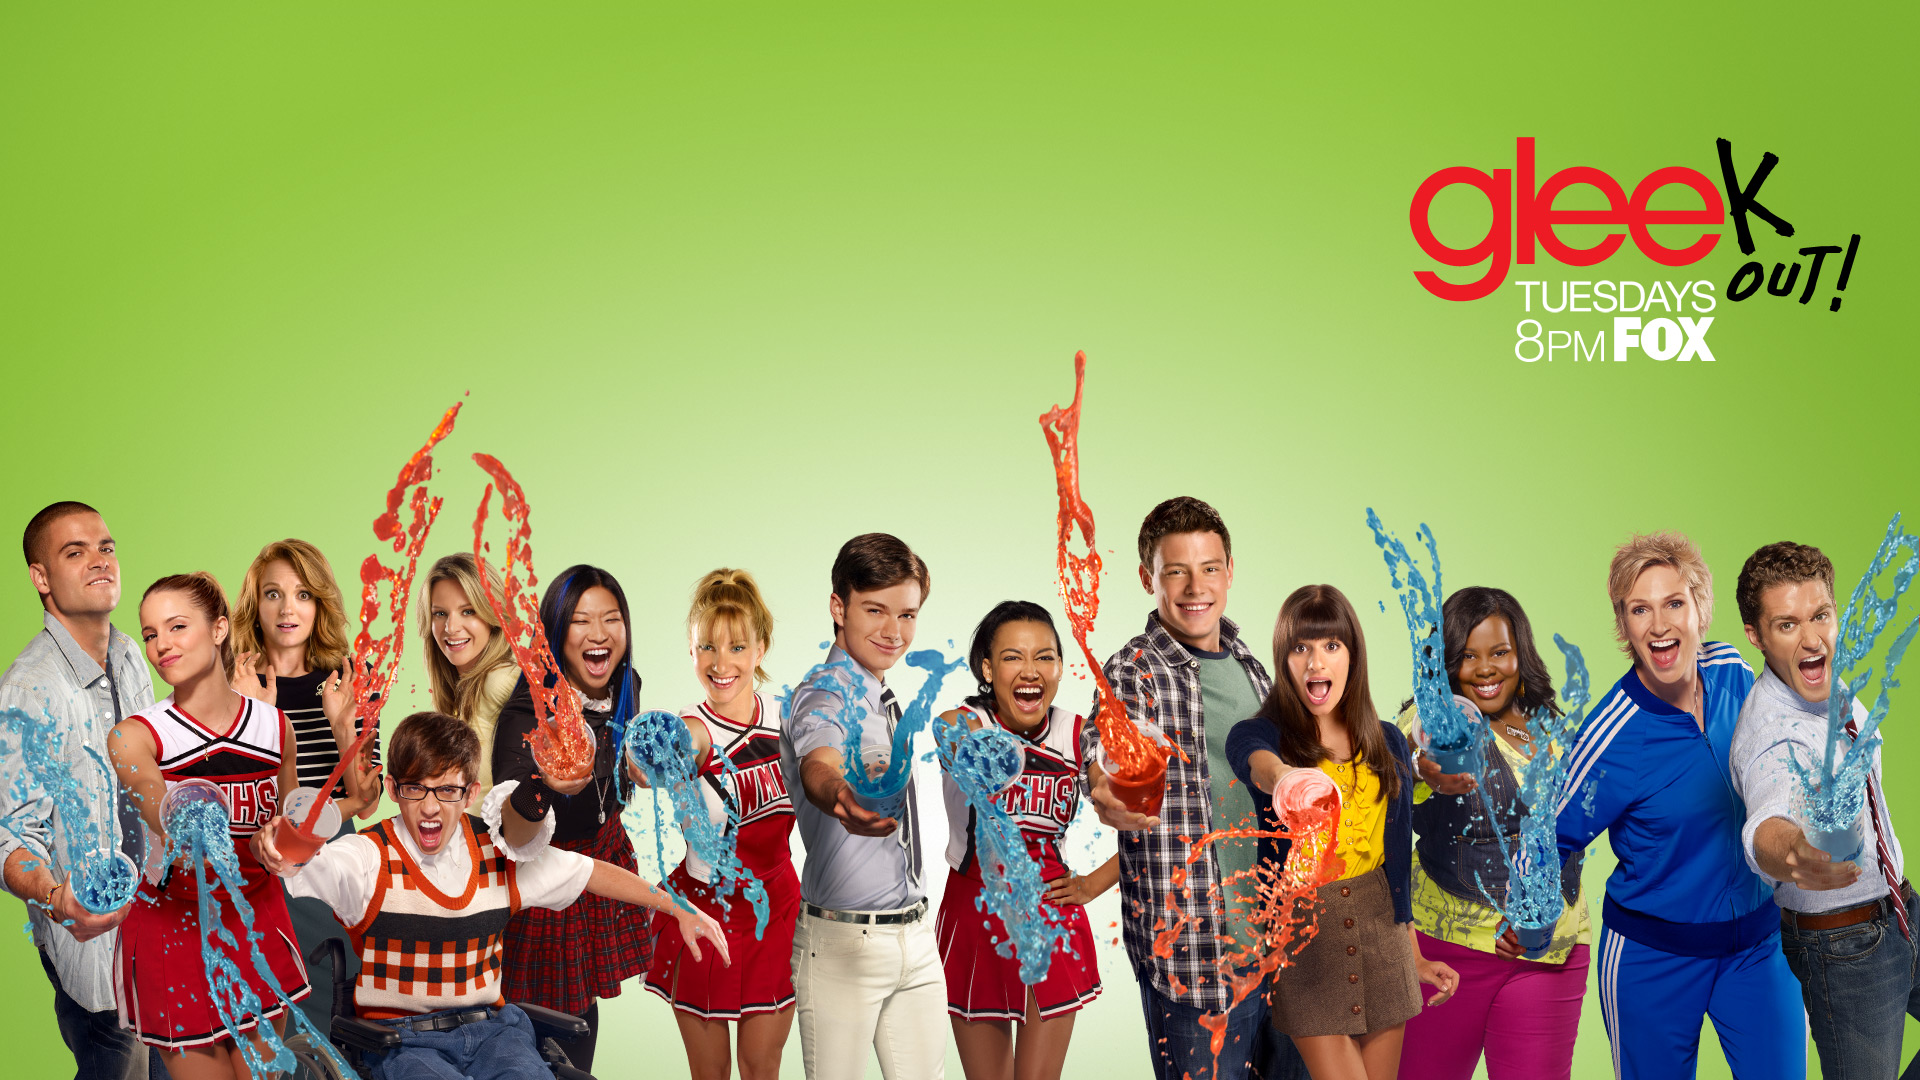 Glee TV Cast